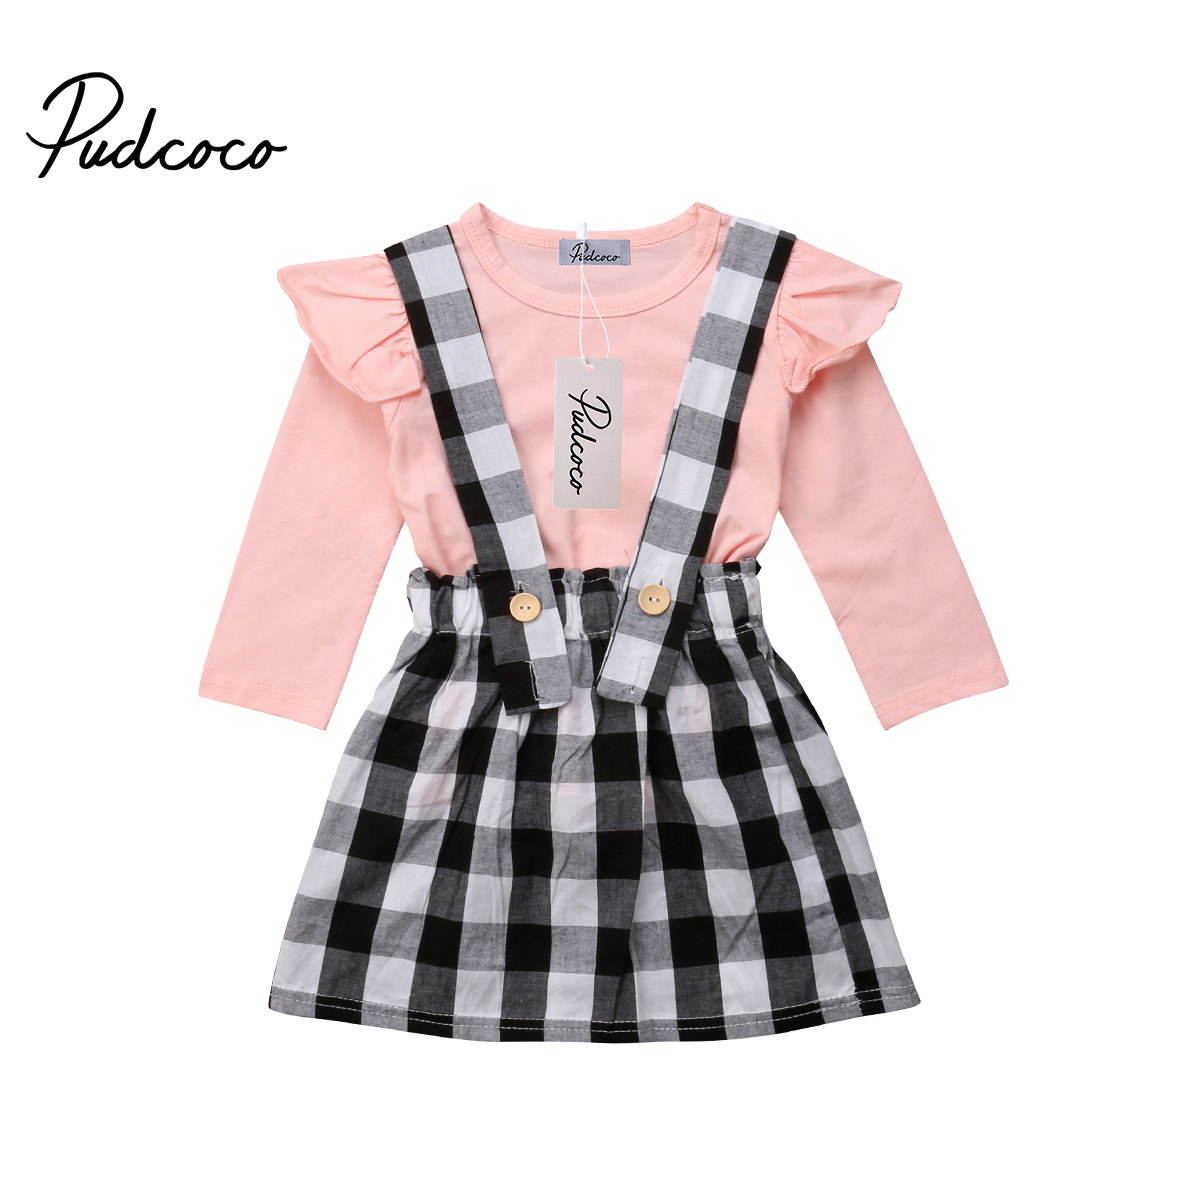 Clothing Sets Mother & Kids Steady Autumn New Kids Baby Girl Clothes Set Toddler Kids Girls Long Sleeve Pink T-shirt Top Plaid Strap Skirt 2pcs Casual Outfits Suit Reasonable Price